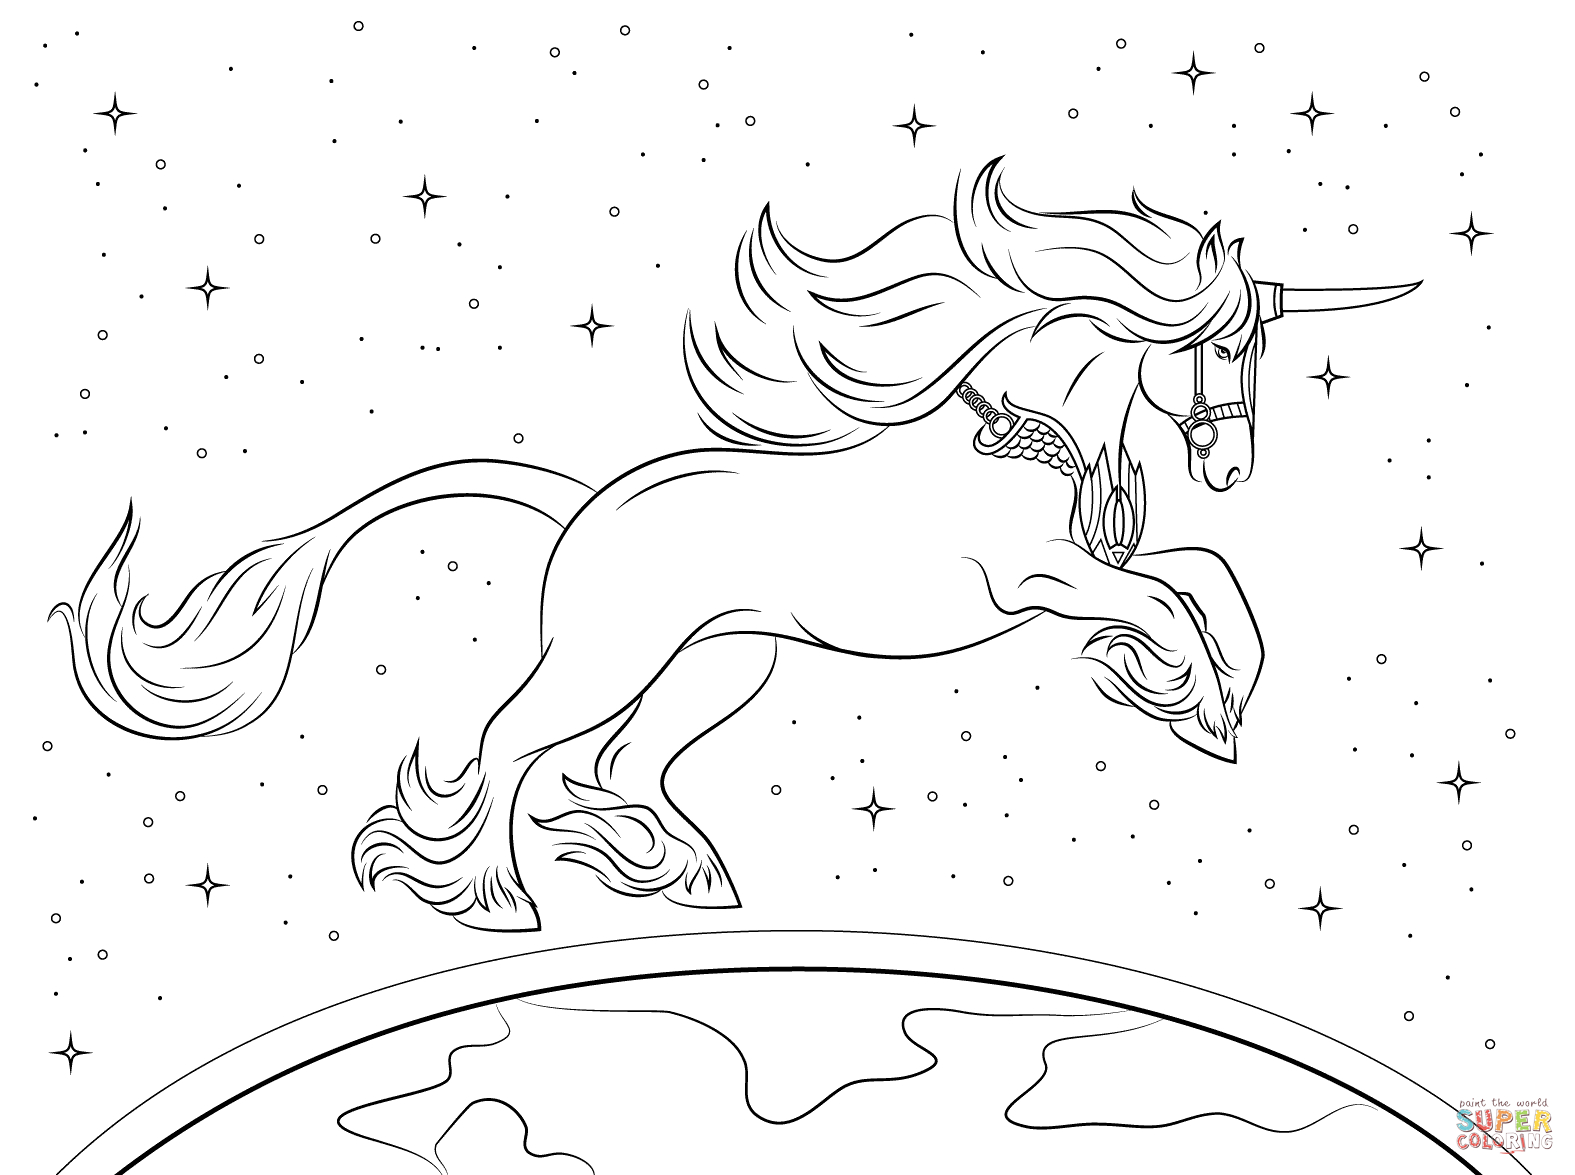 Beautiful Unicorn Coloring Page | Free Printable Coloring Pages - Free Printable Unicorn Coloring Pages